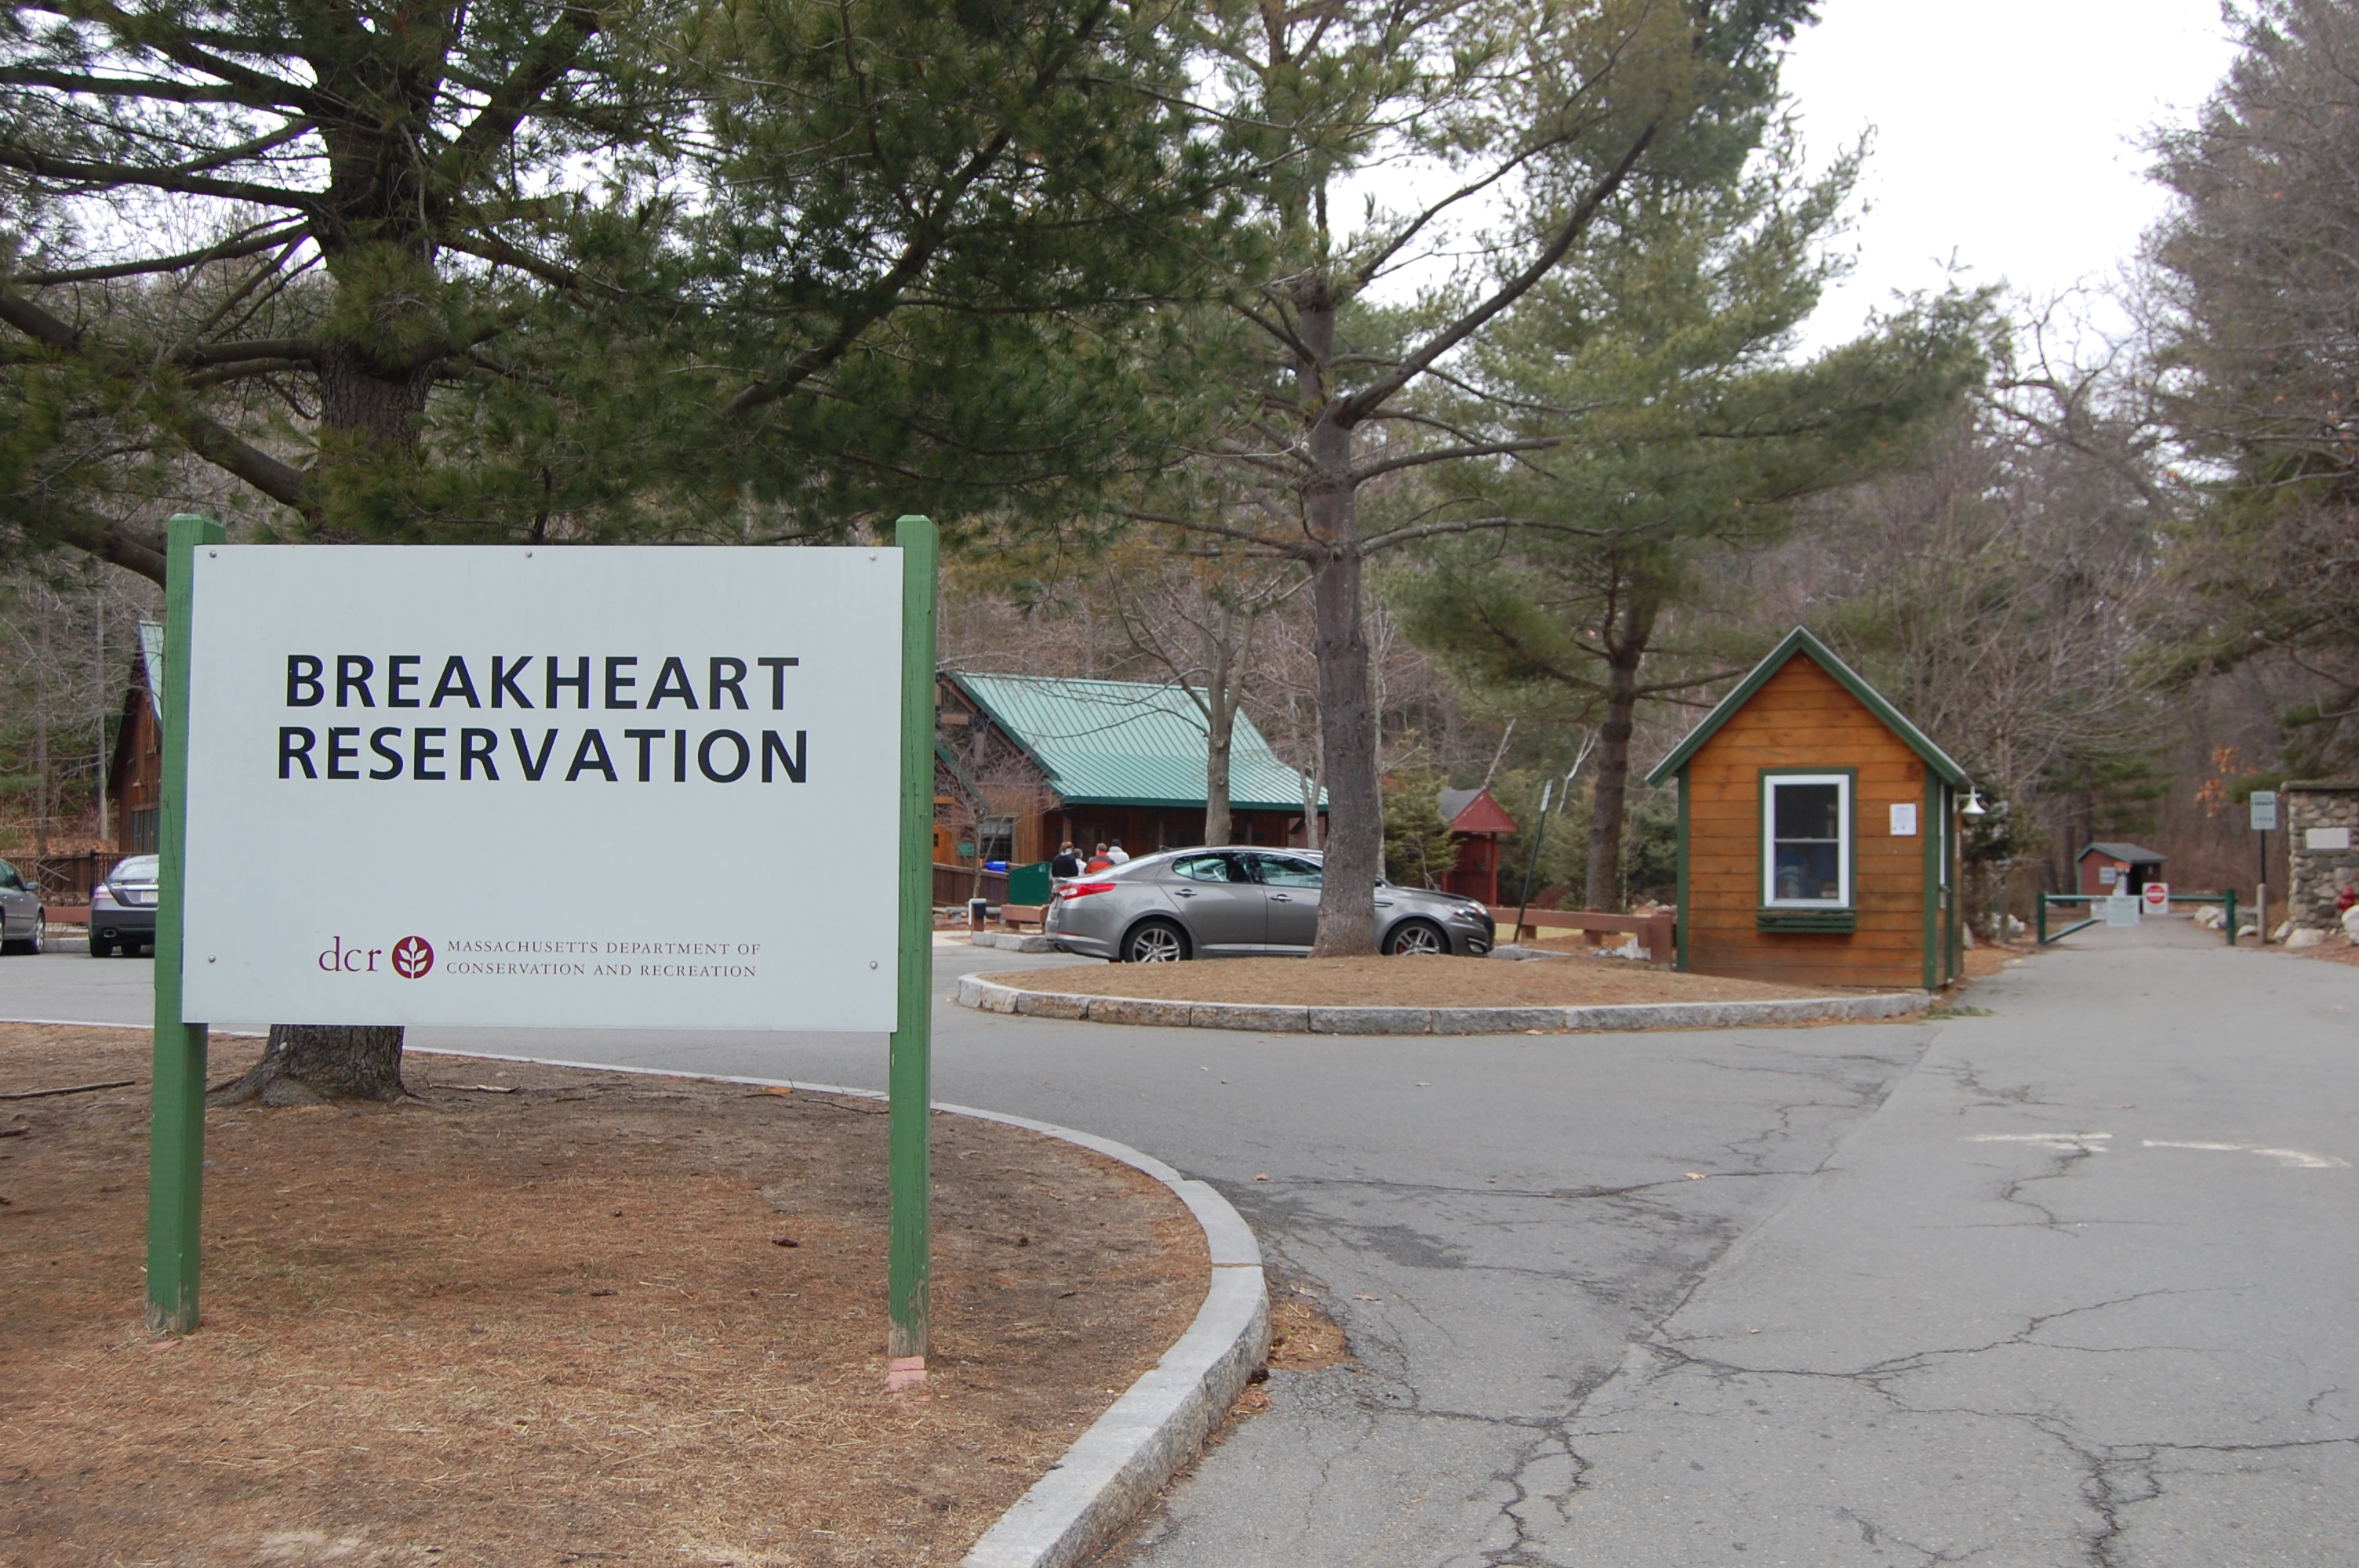 Breakheart Reservation entrance and visitor center.